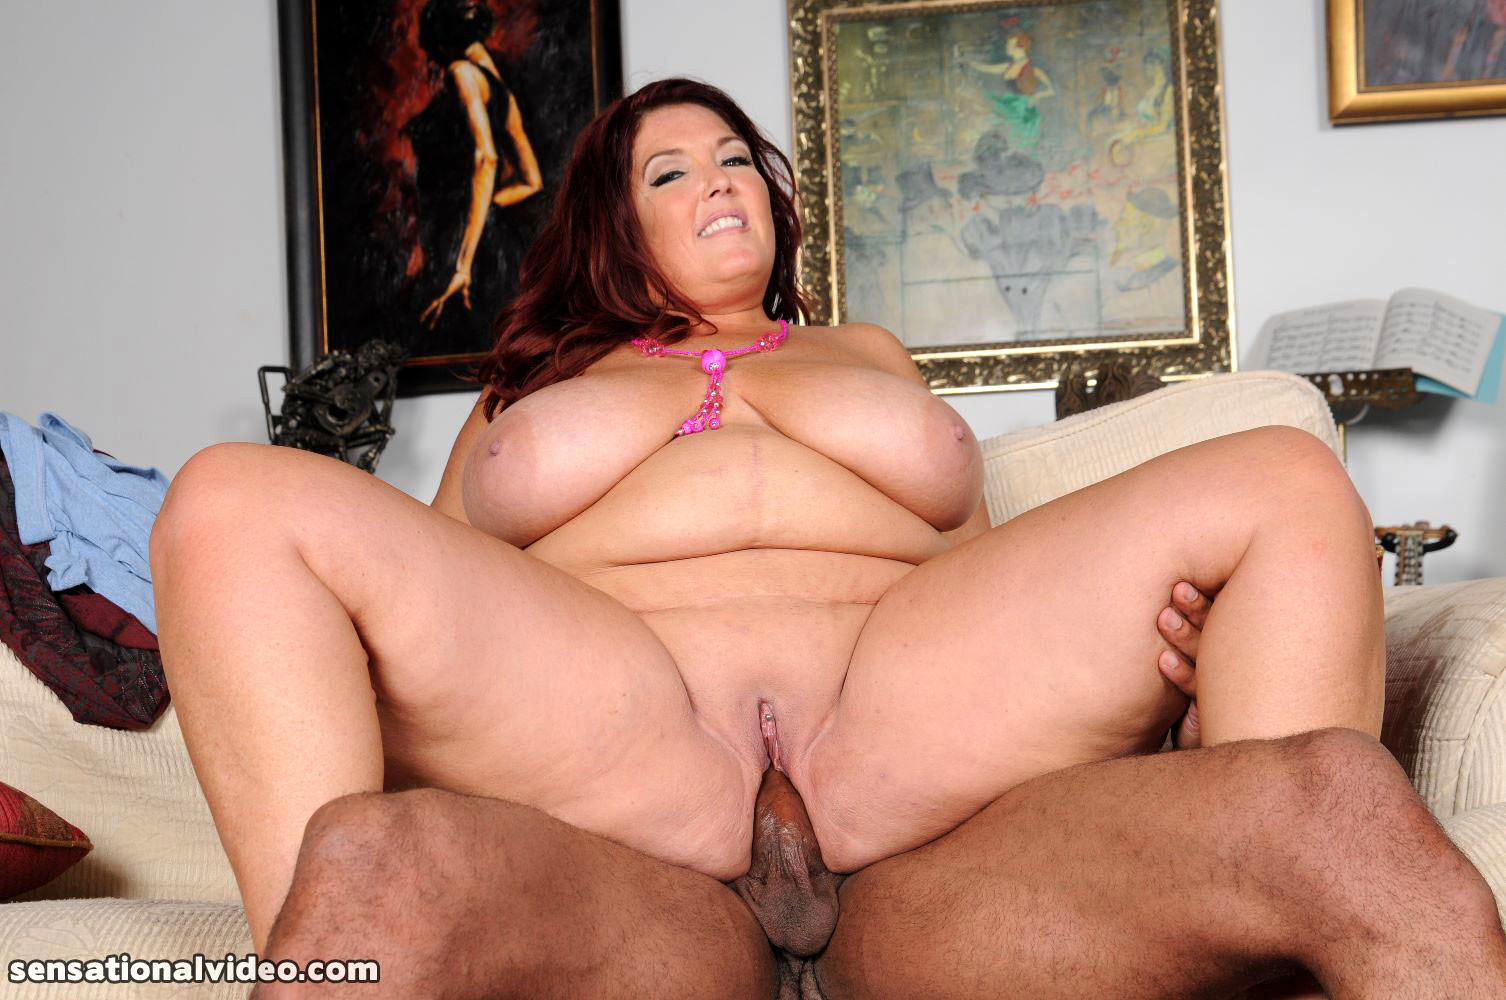 Was and Hot mom bbw free fuck clips